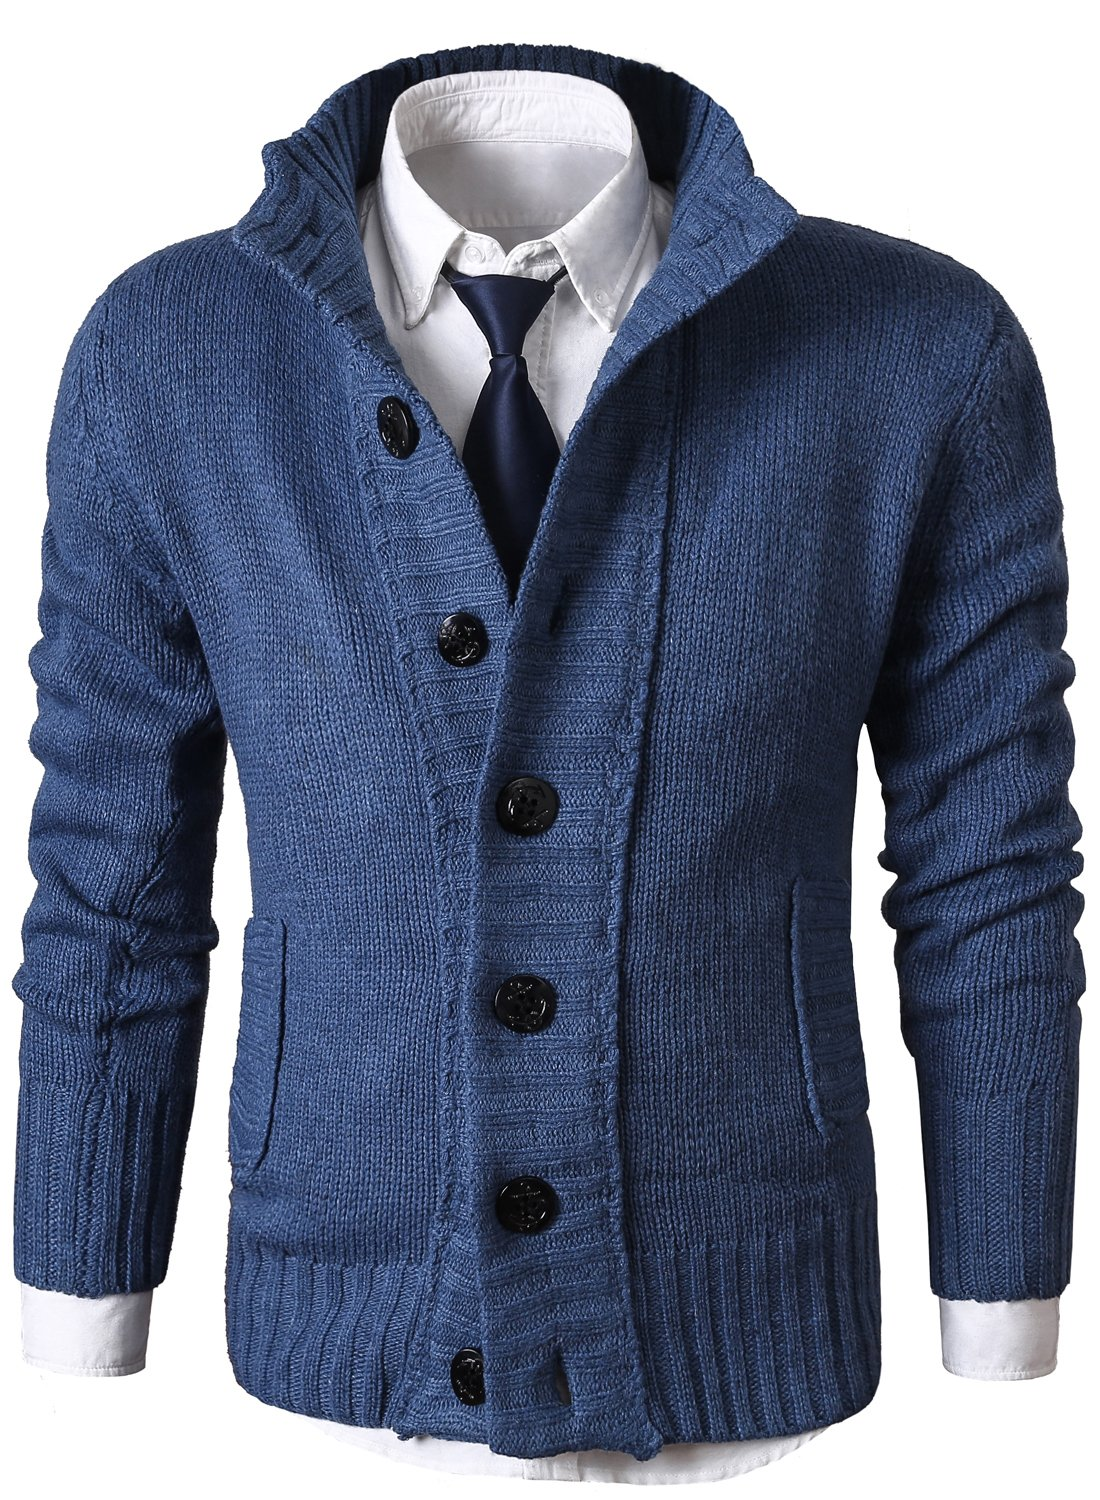 MIEDEON Mens Casual Stand Collar Cable Knitted Button Down Cardigan Sweater (M, Blue2)